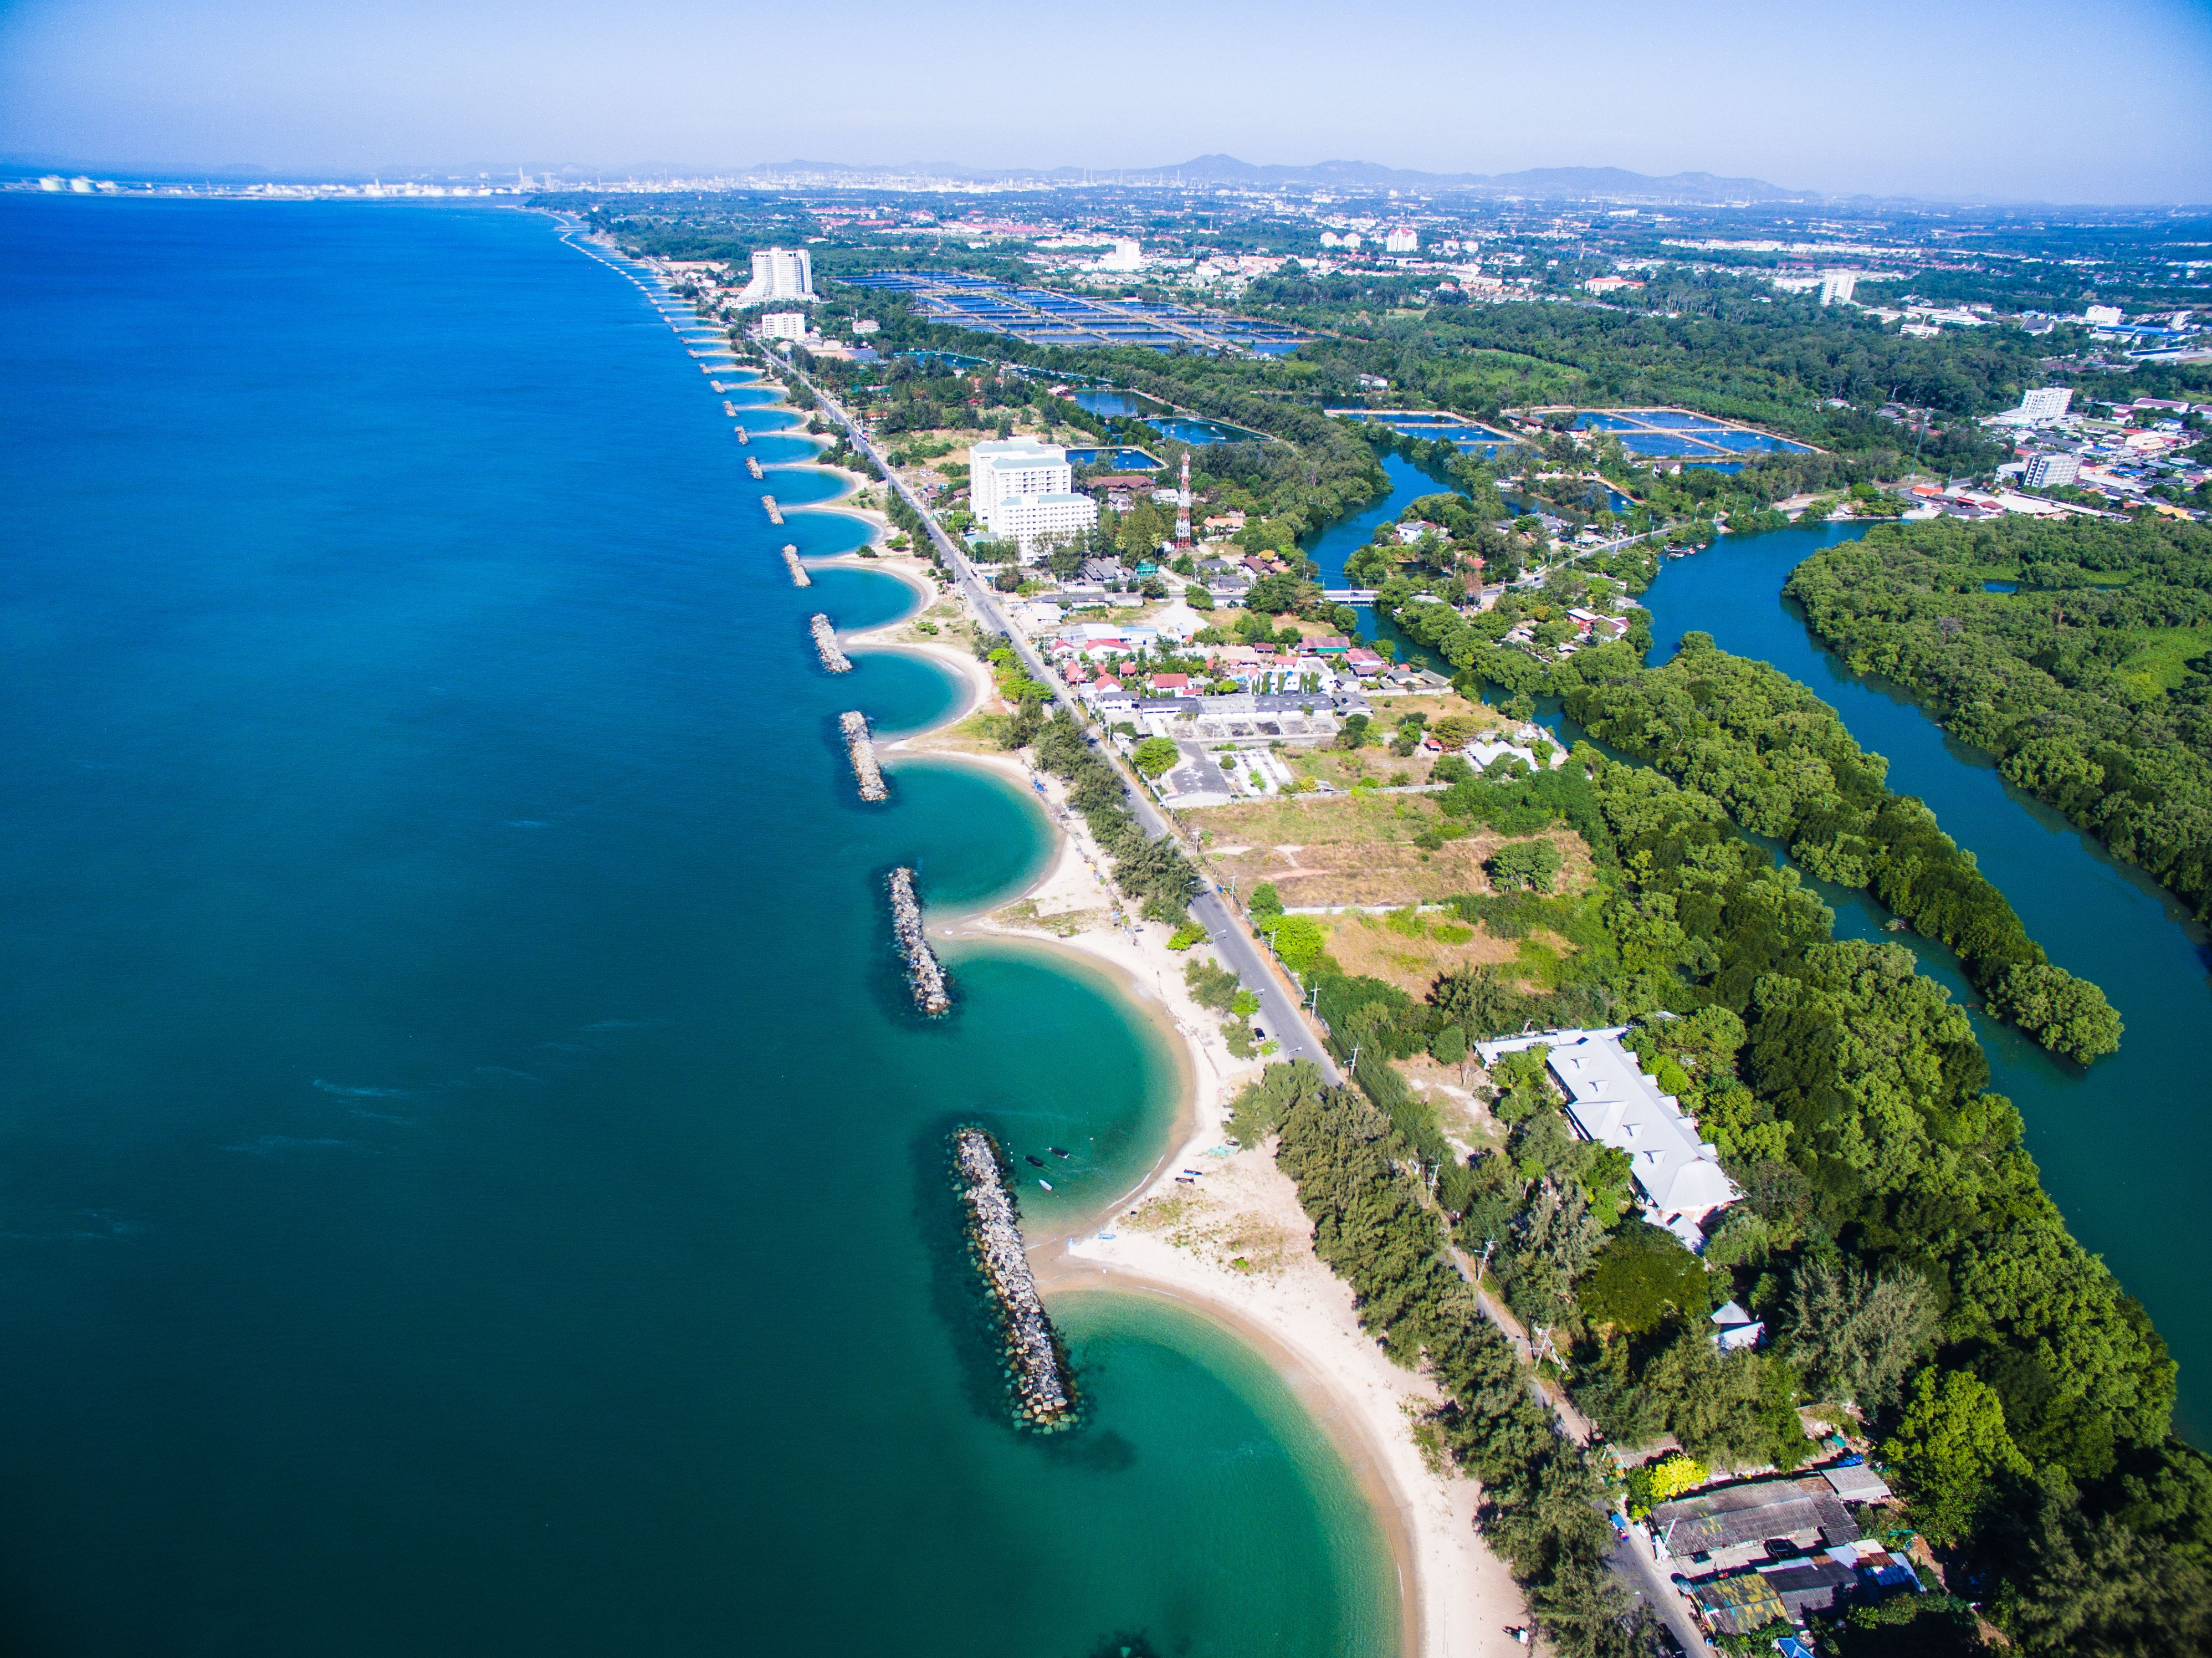 Aerial view of the sawtooth beach in Rayong, Thailand